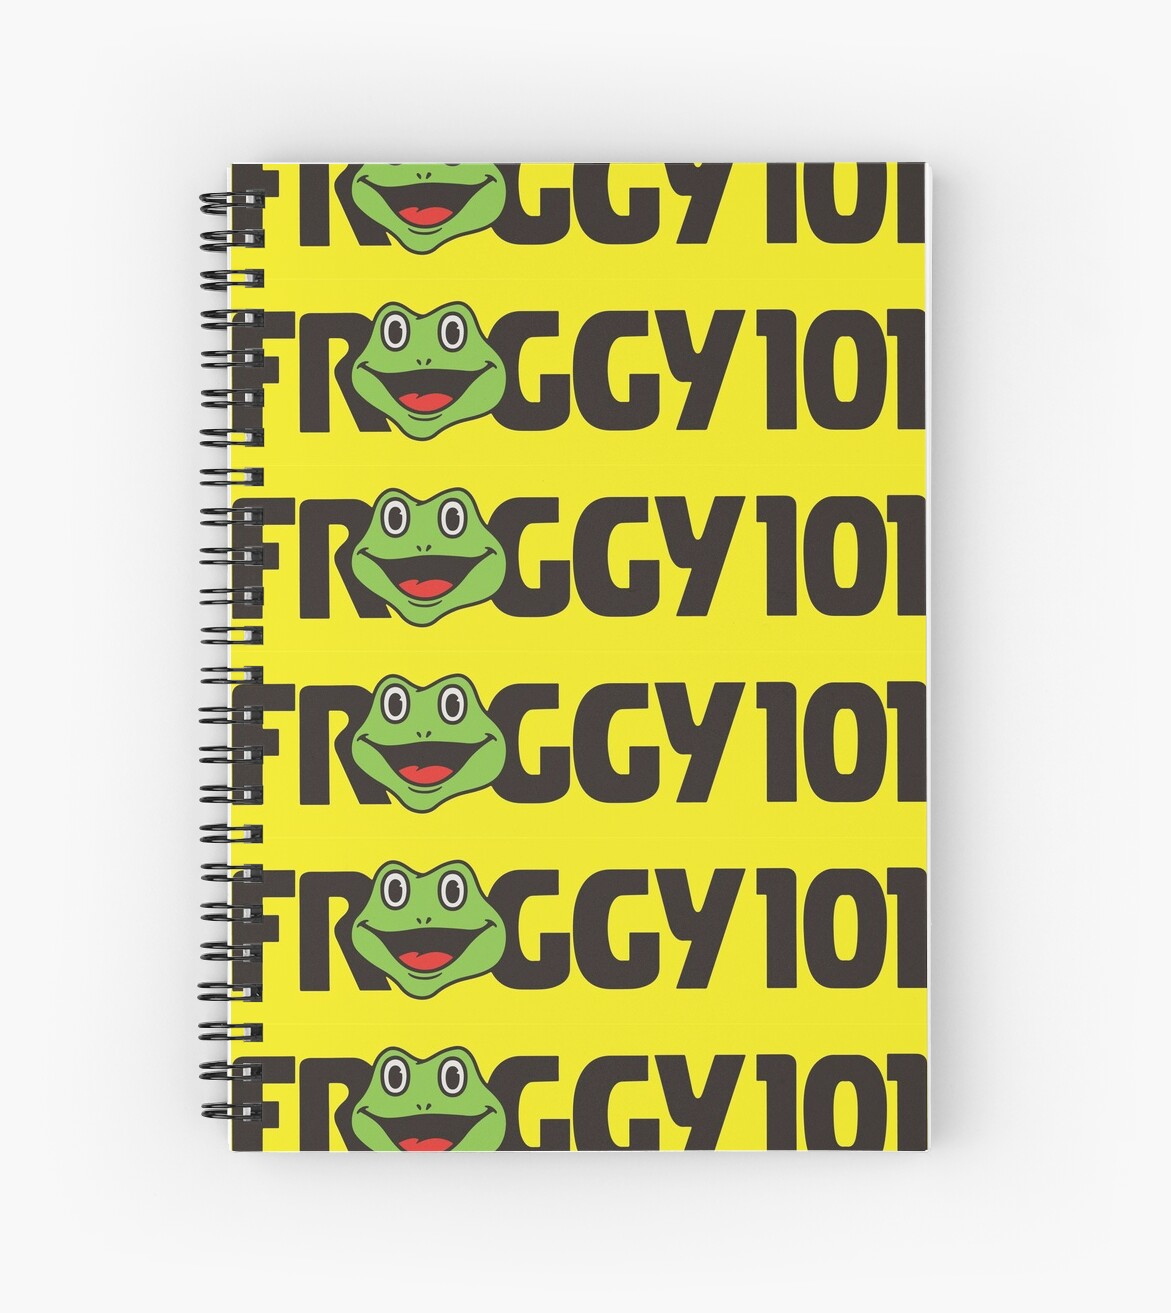 Froggy 101 the office by chris jackson